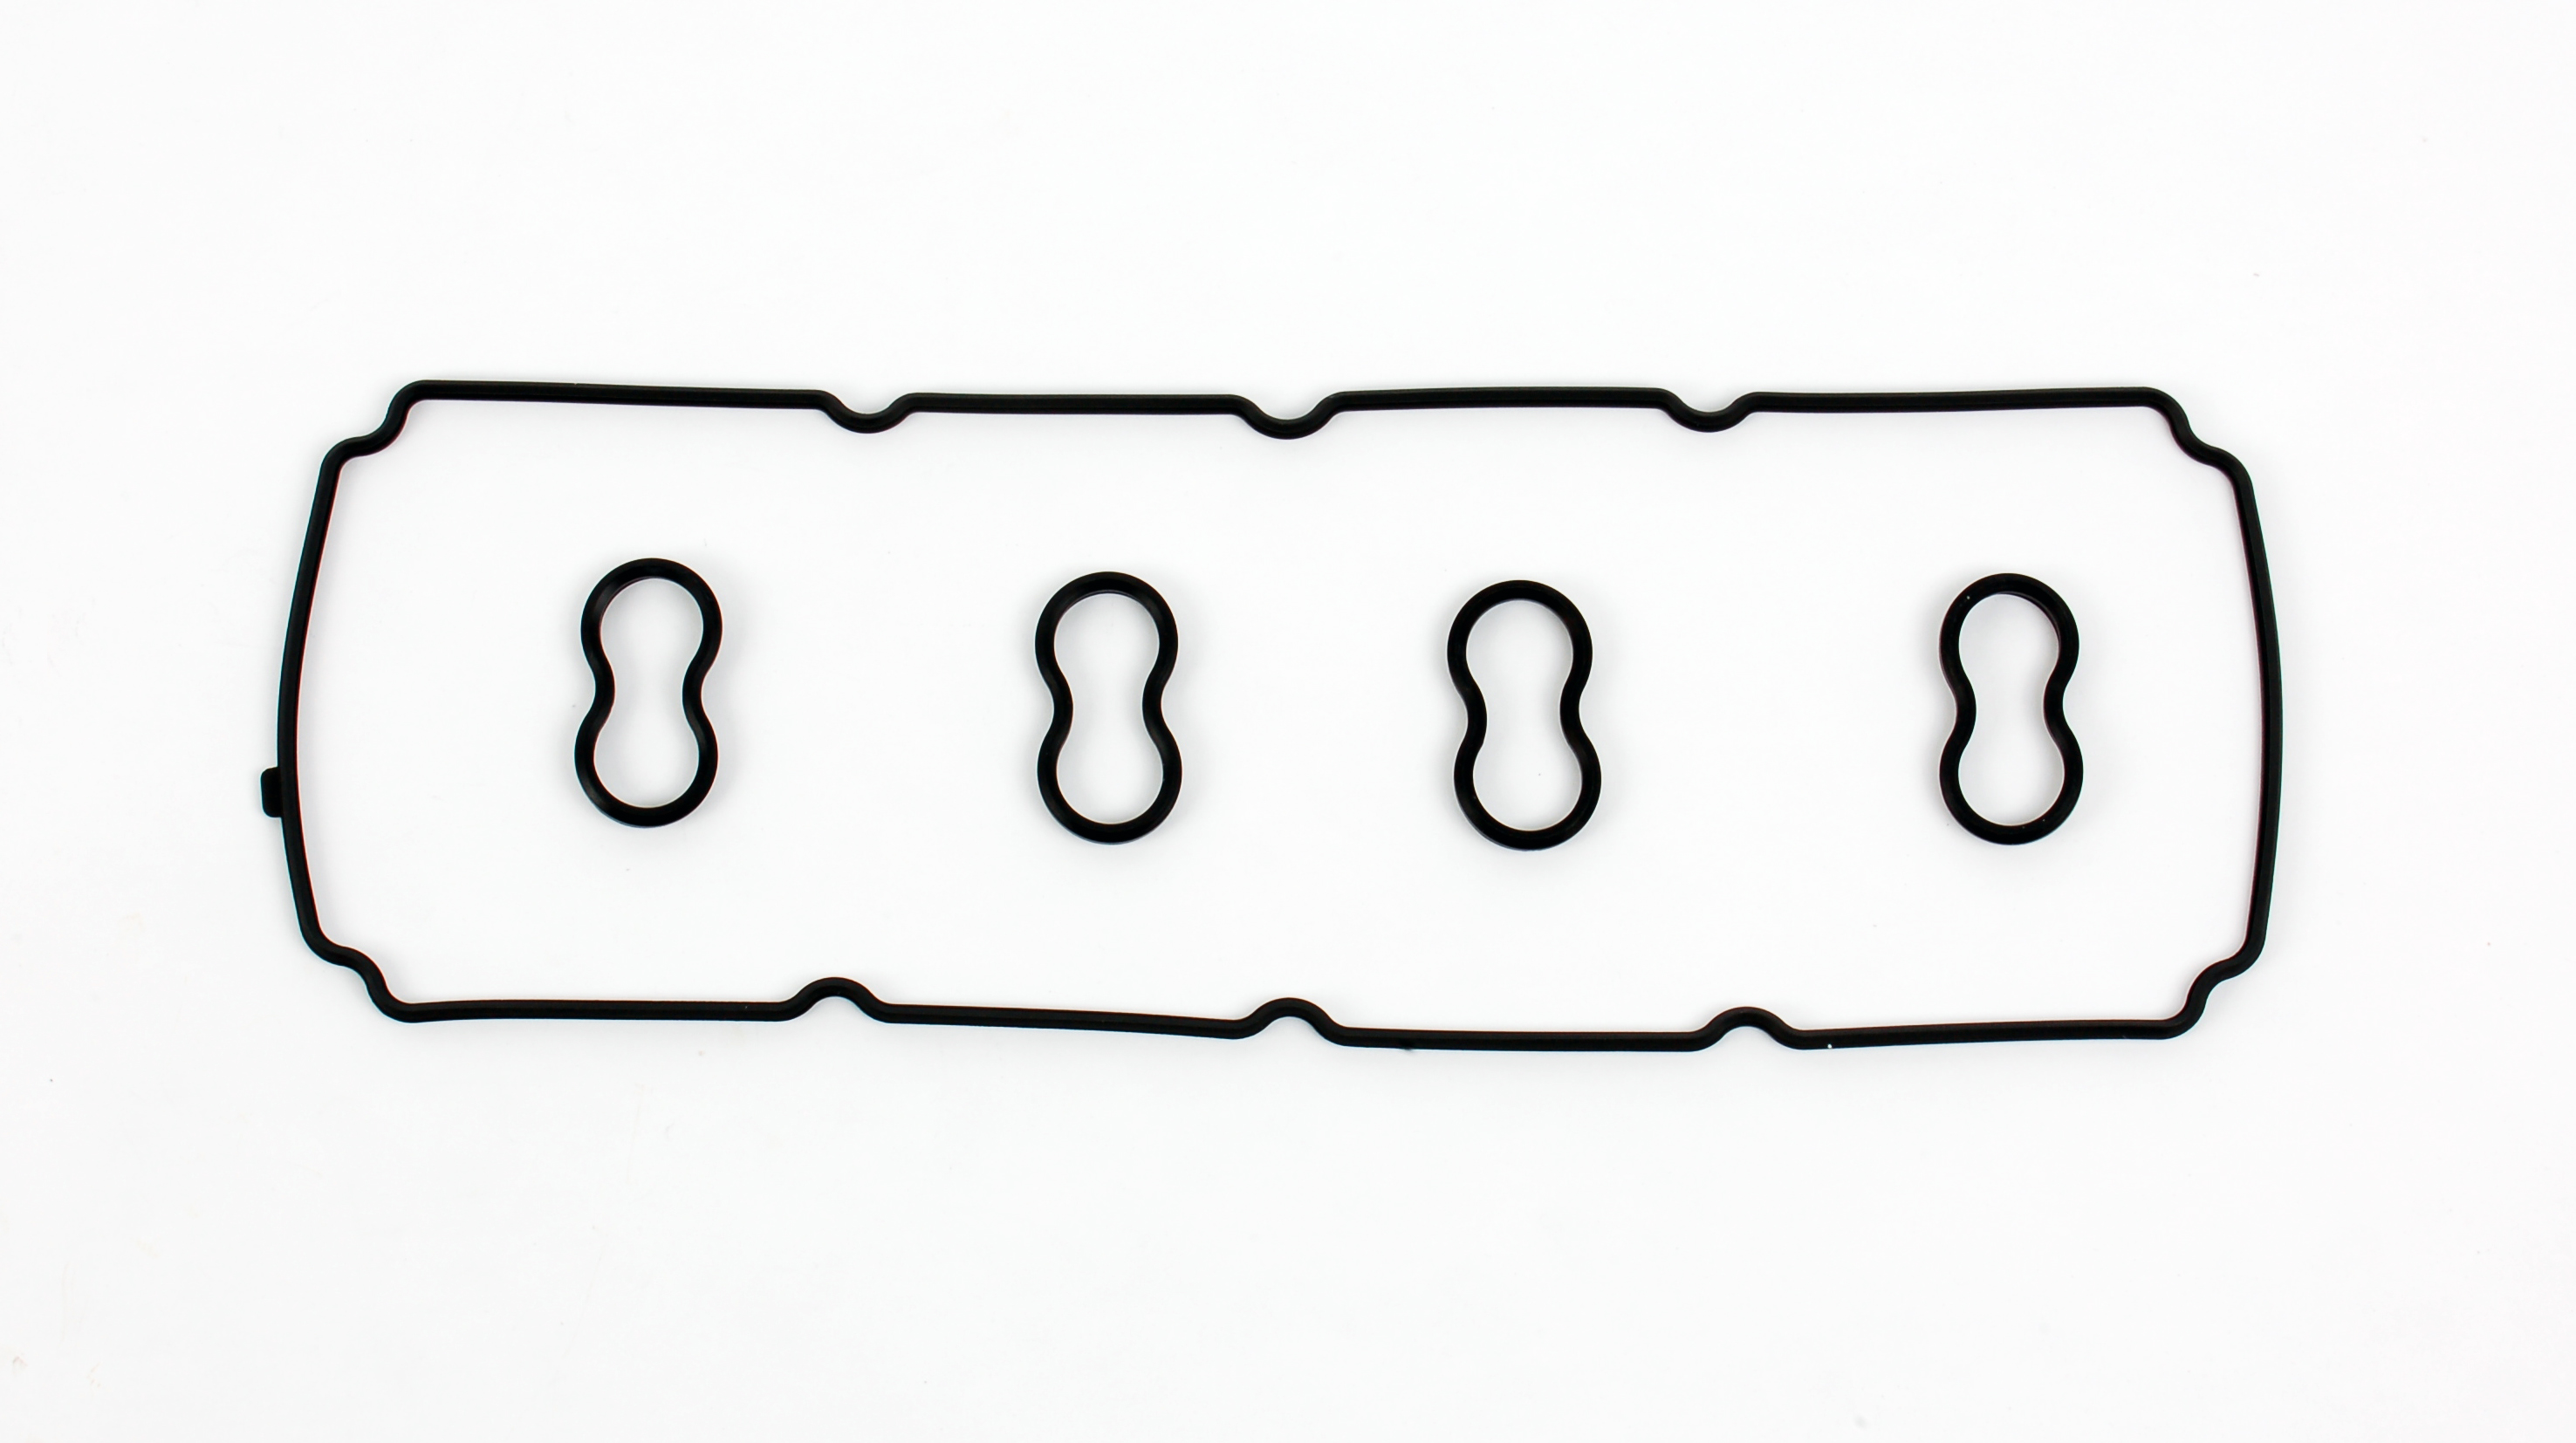 Cometic Gasket C5193 Valve Cover Gasket. Each